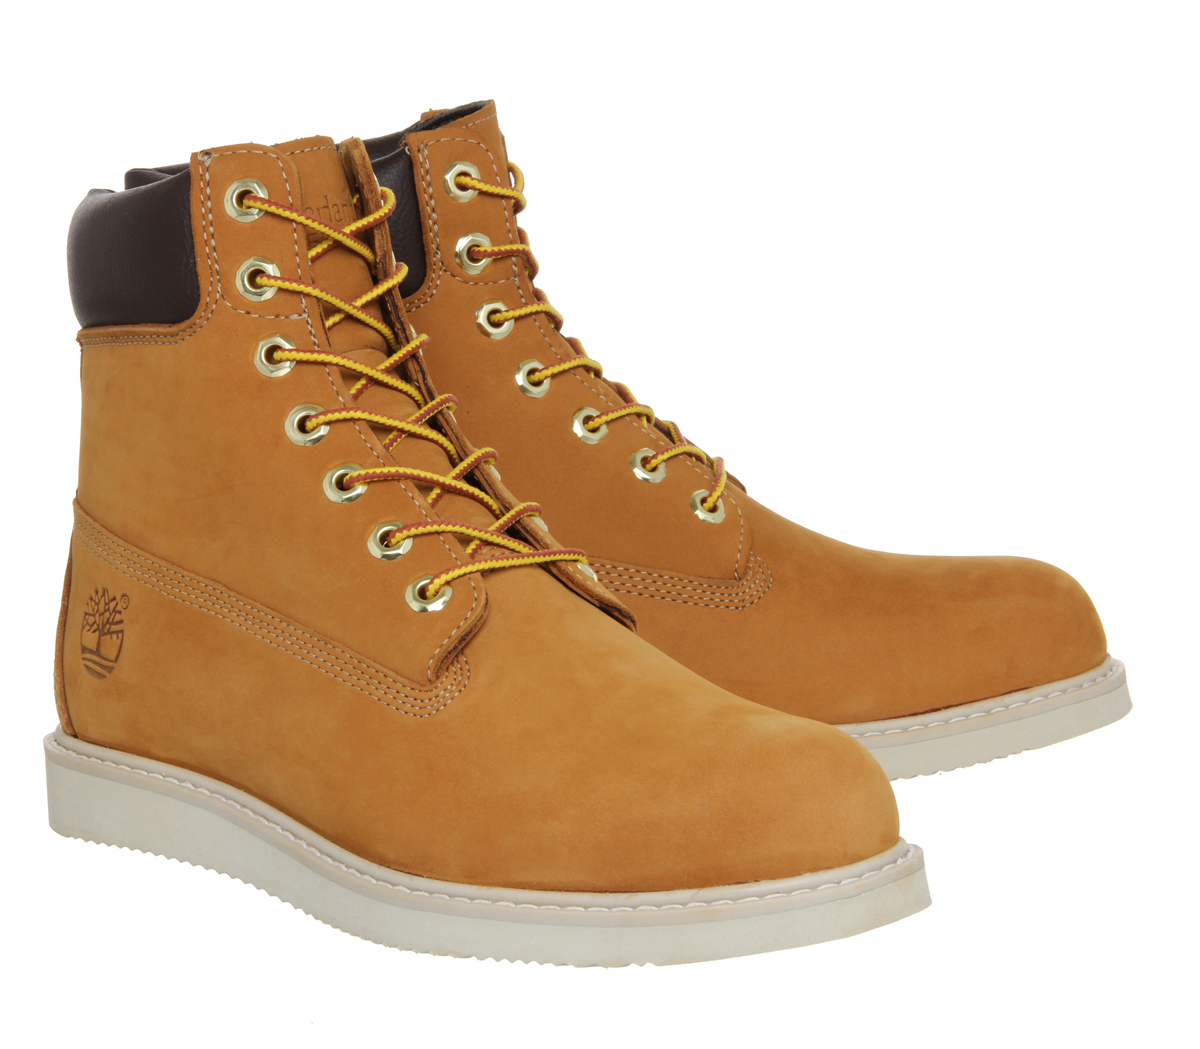 timberland 6 inch wedge boots in beige for wheat